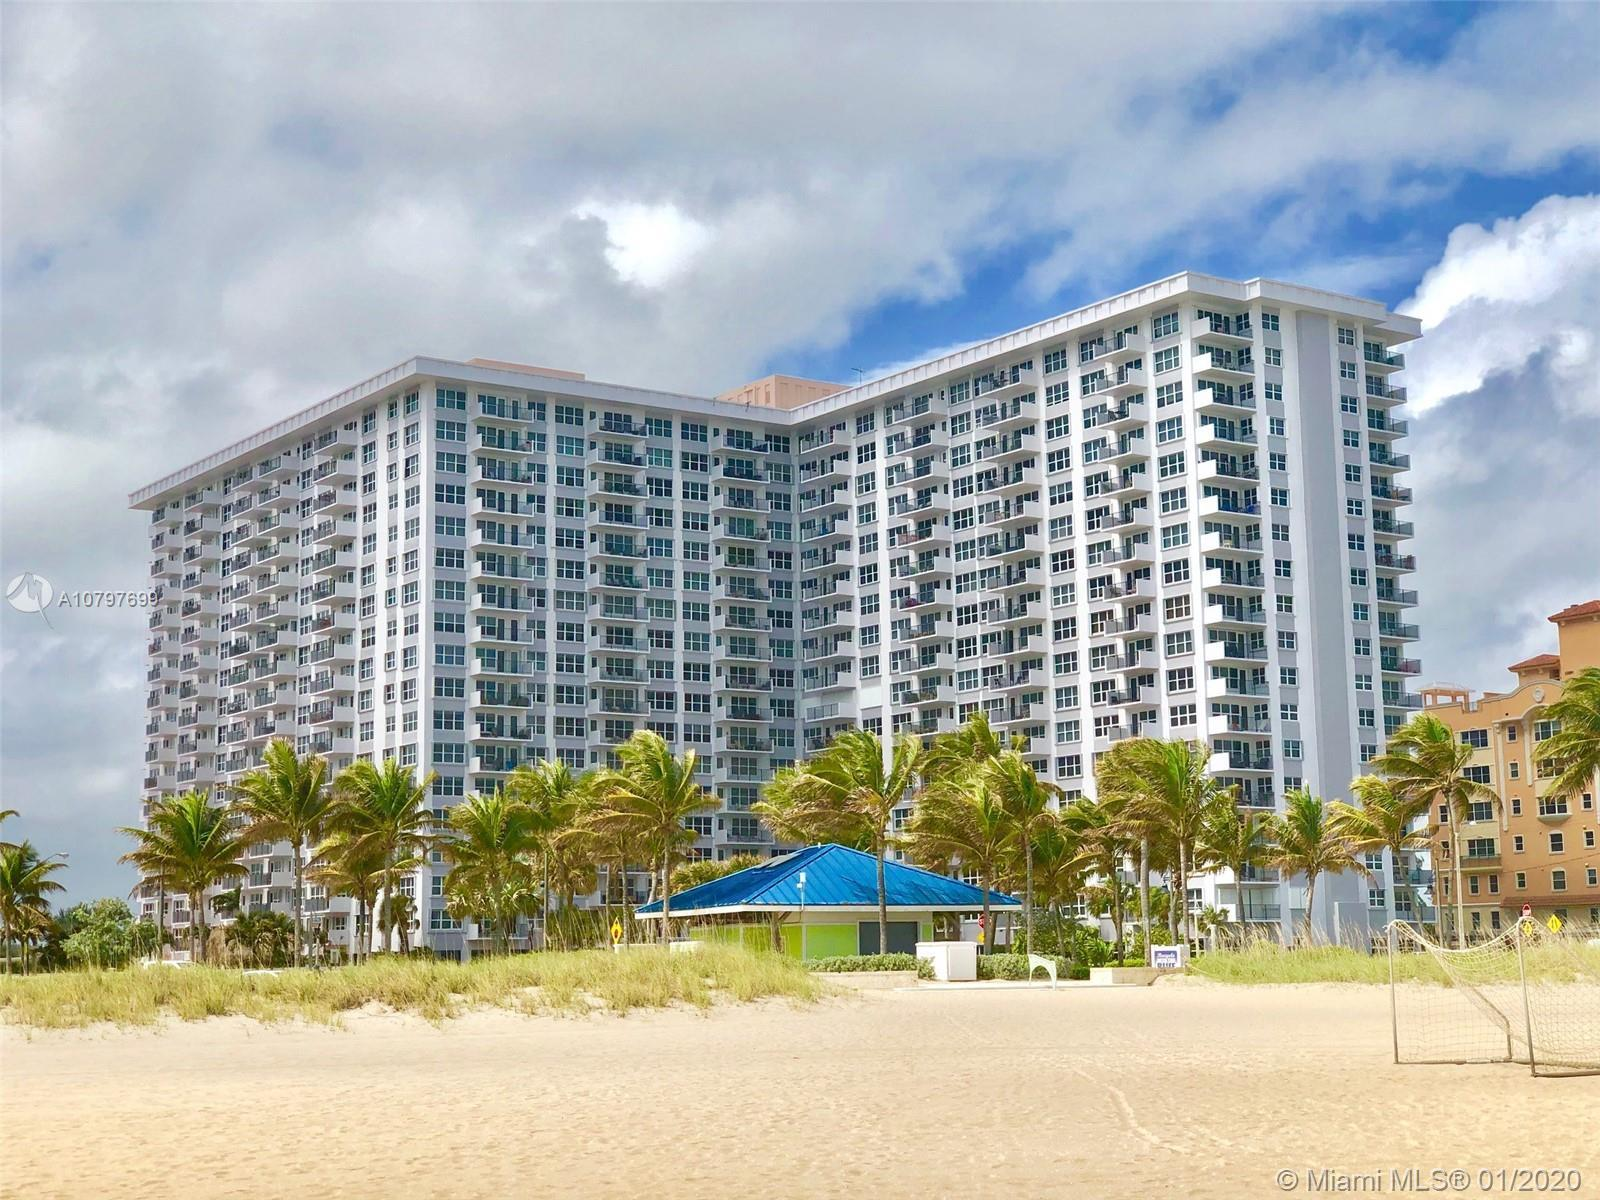 Enjoy the very best Pompano Beach has to offer. From the newly redeveloped and redesigned beach area